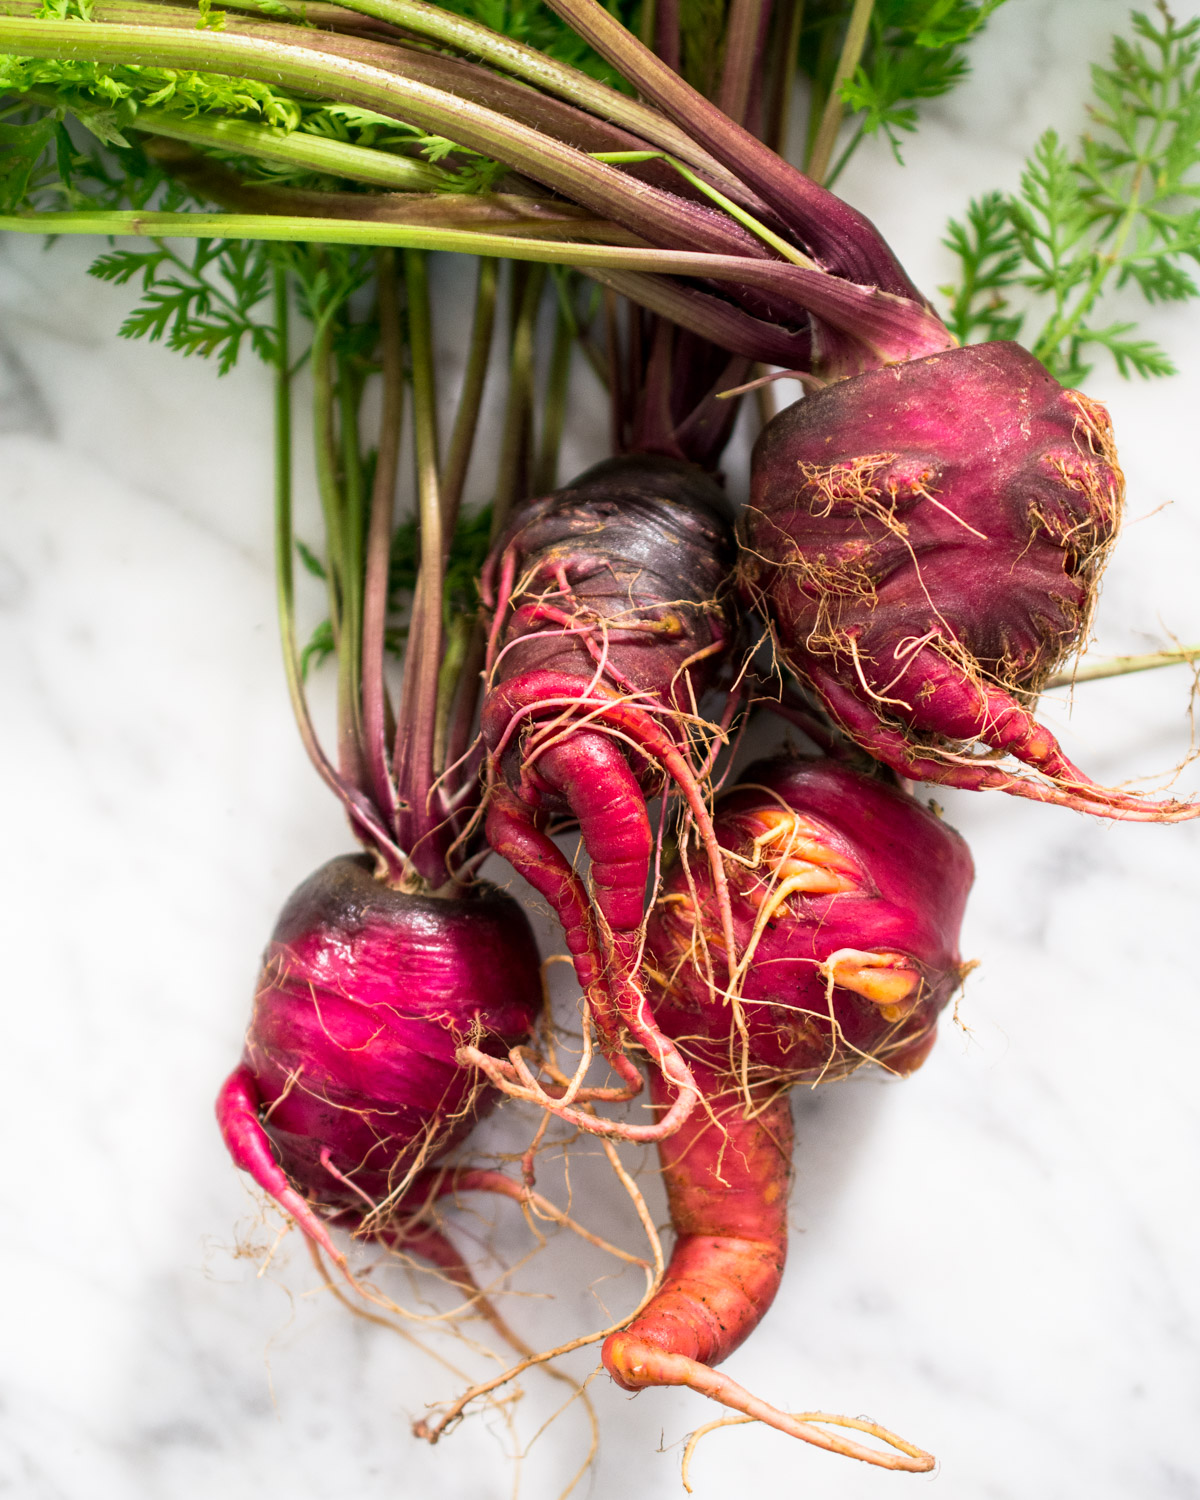 Ugly purple carrots just harvested from the garden.